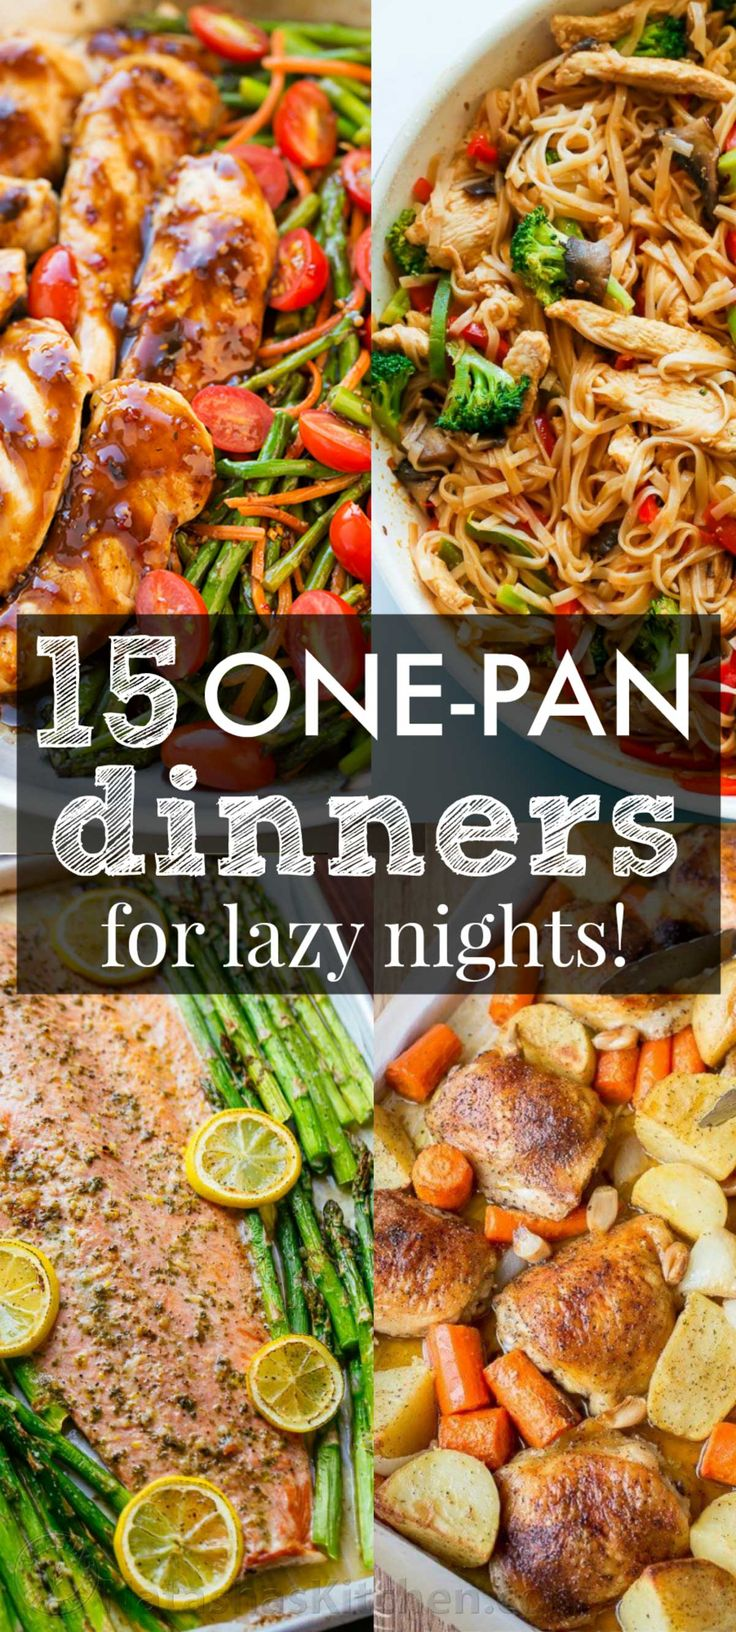 The Best One Pan Recipes to get you excited about dinner! These low stress one-dish, one-pan, one-pot recipes are creative and delicious with easy cleanup!